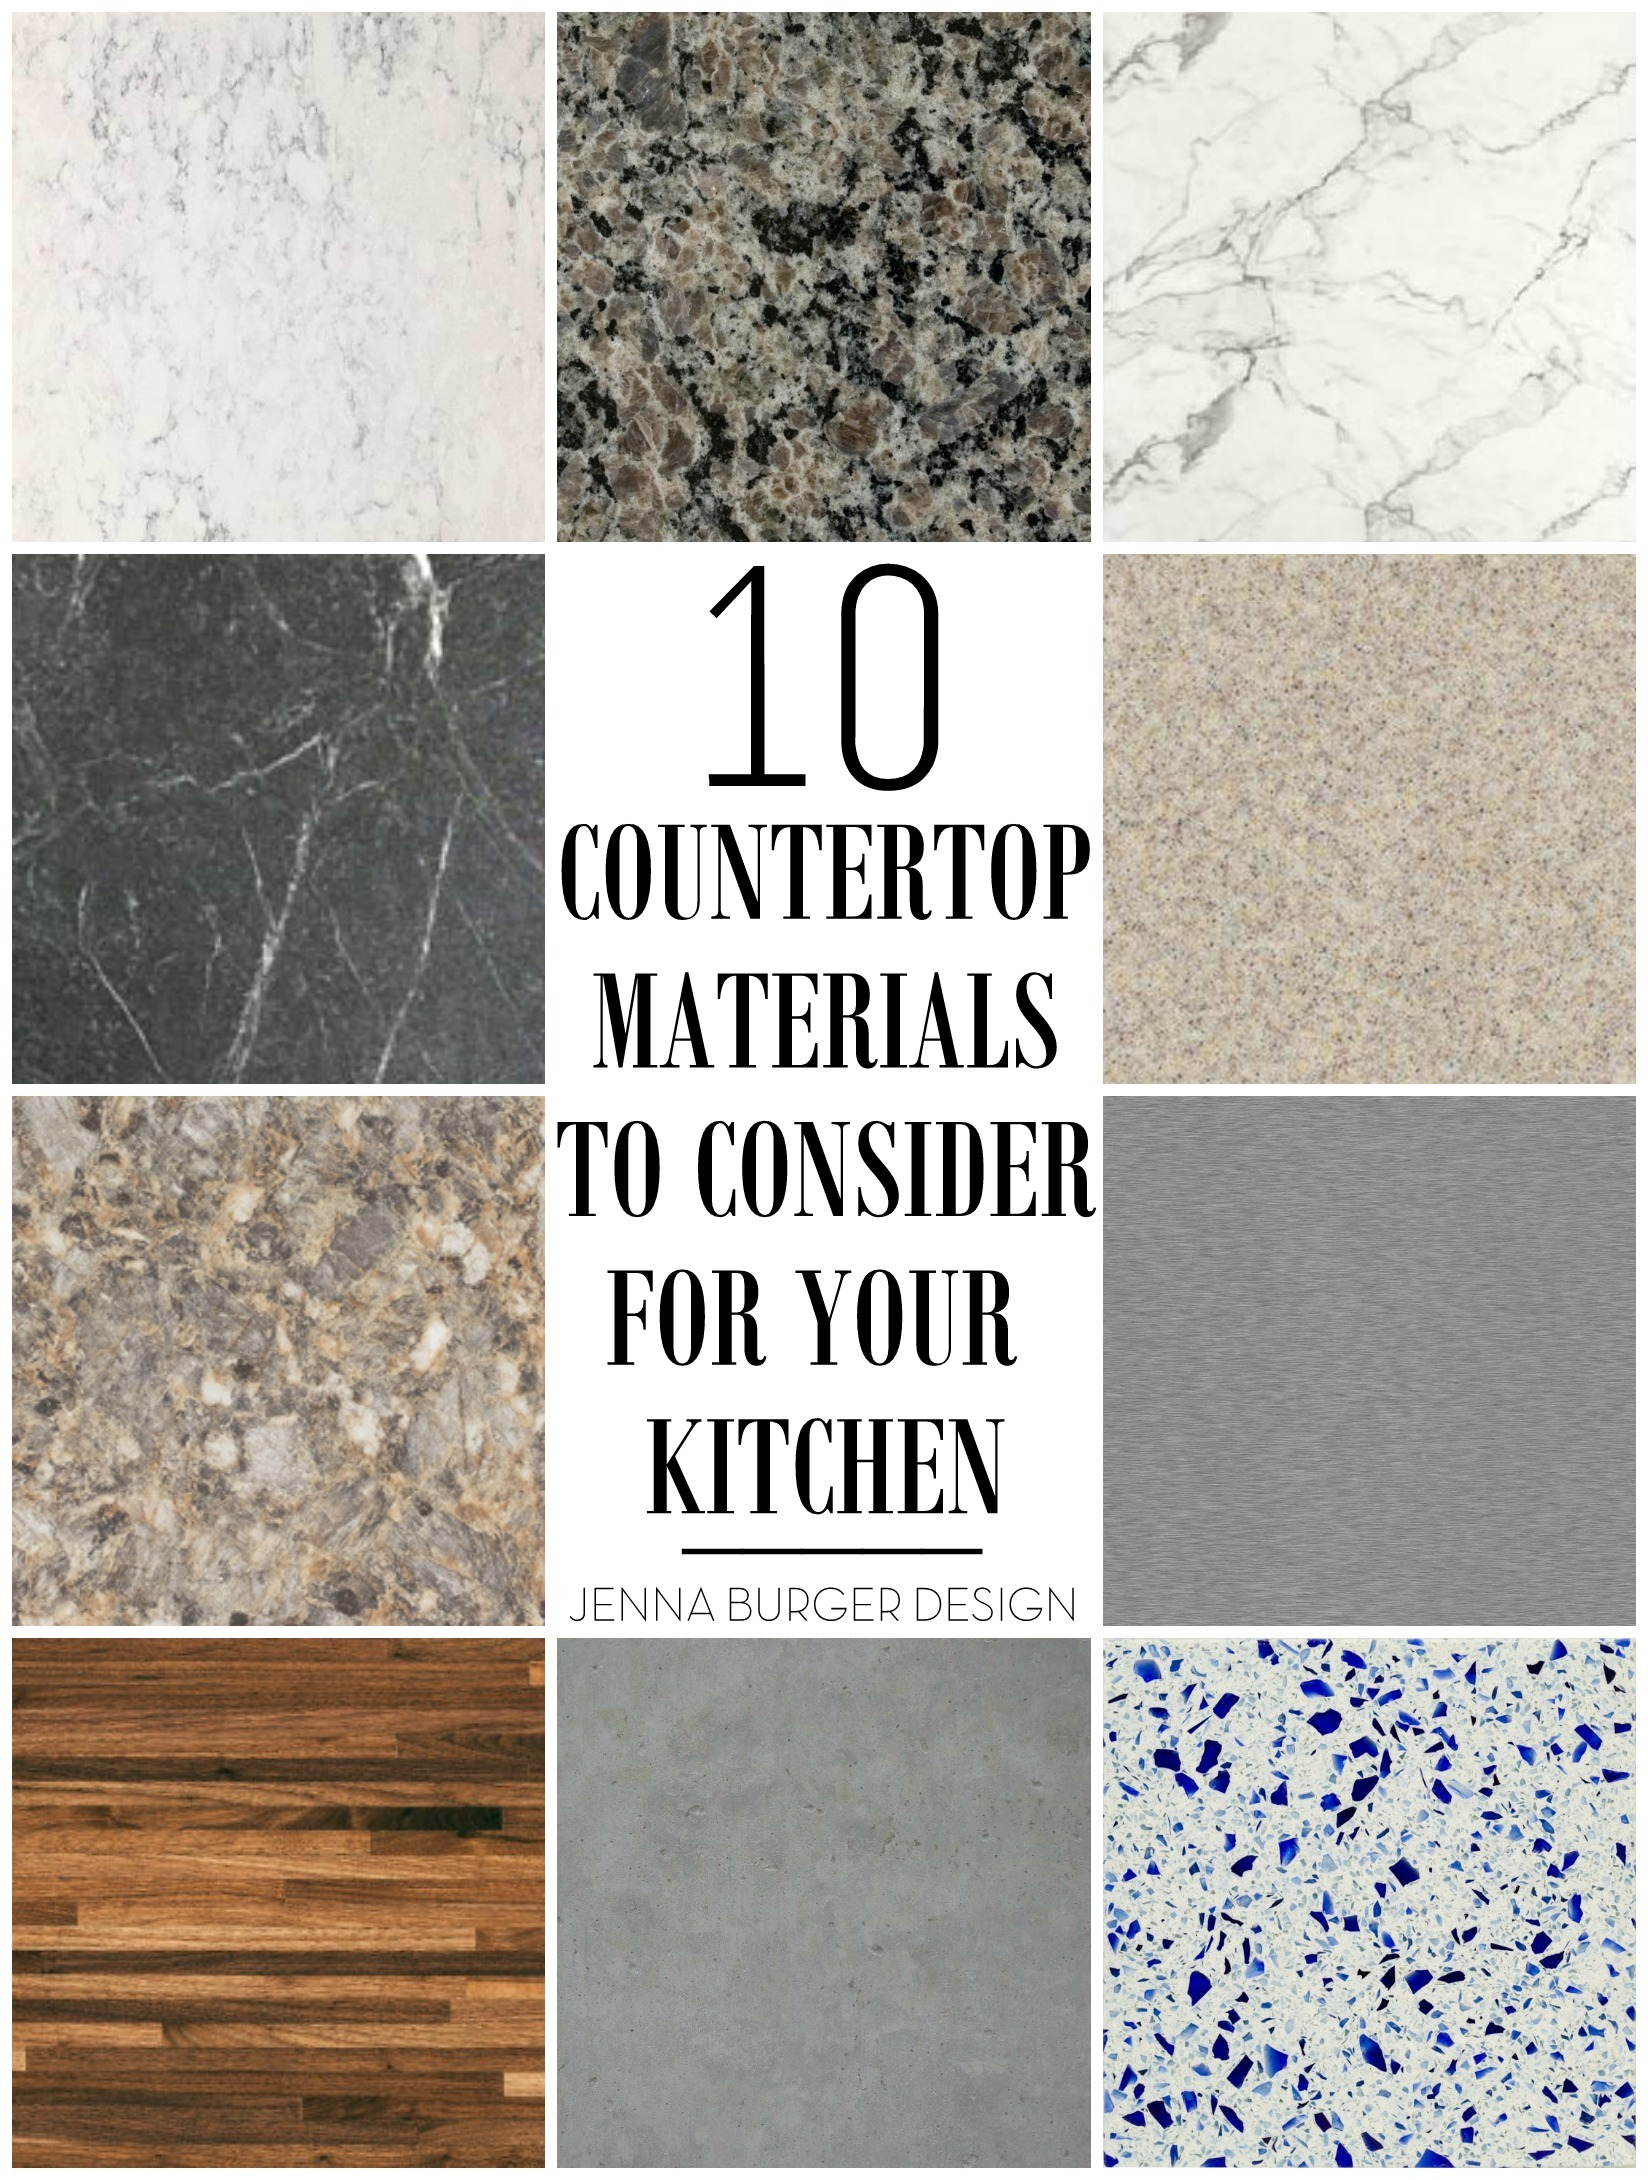 10 Countertop Materials To Consider For Your Kitchen Round Up Of Material Choices At Www